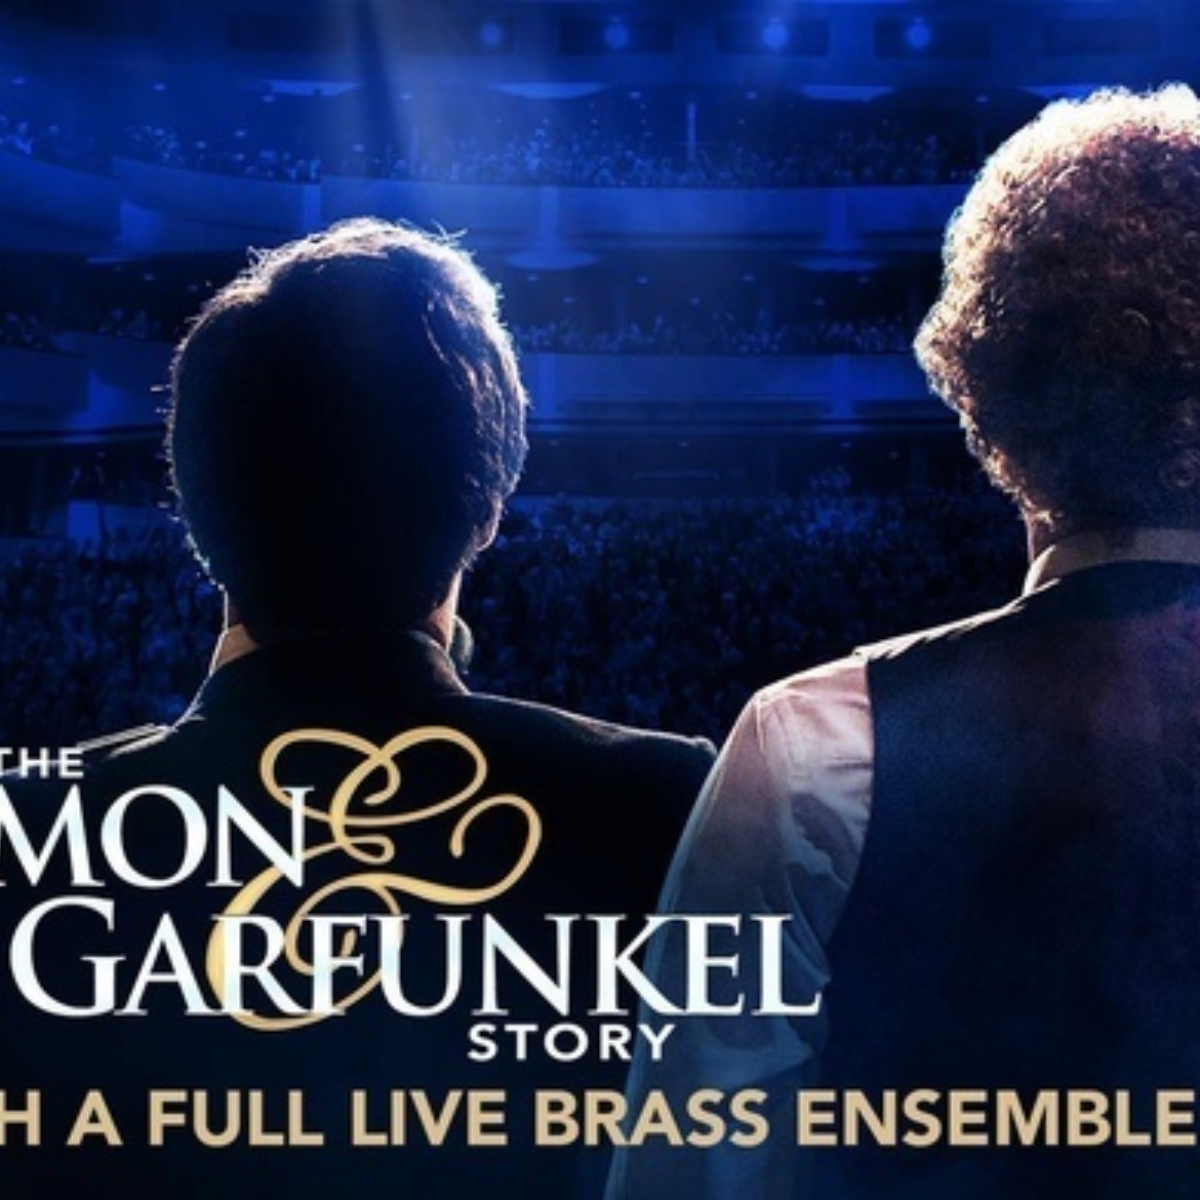 The Simon & Garfunkel Story Images